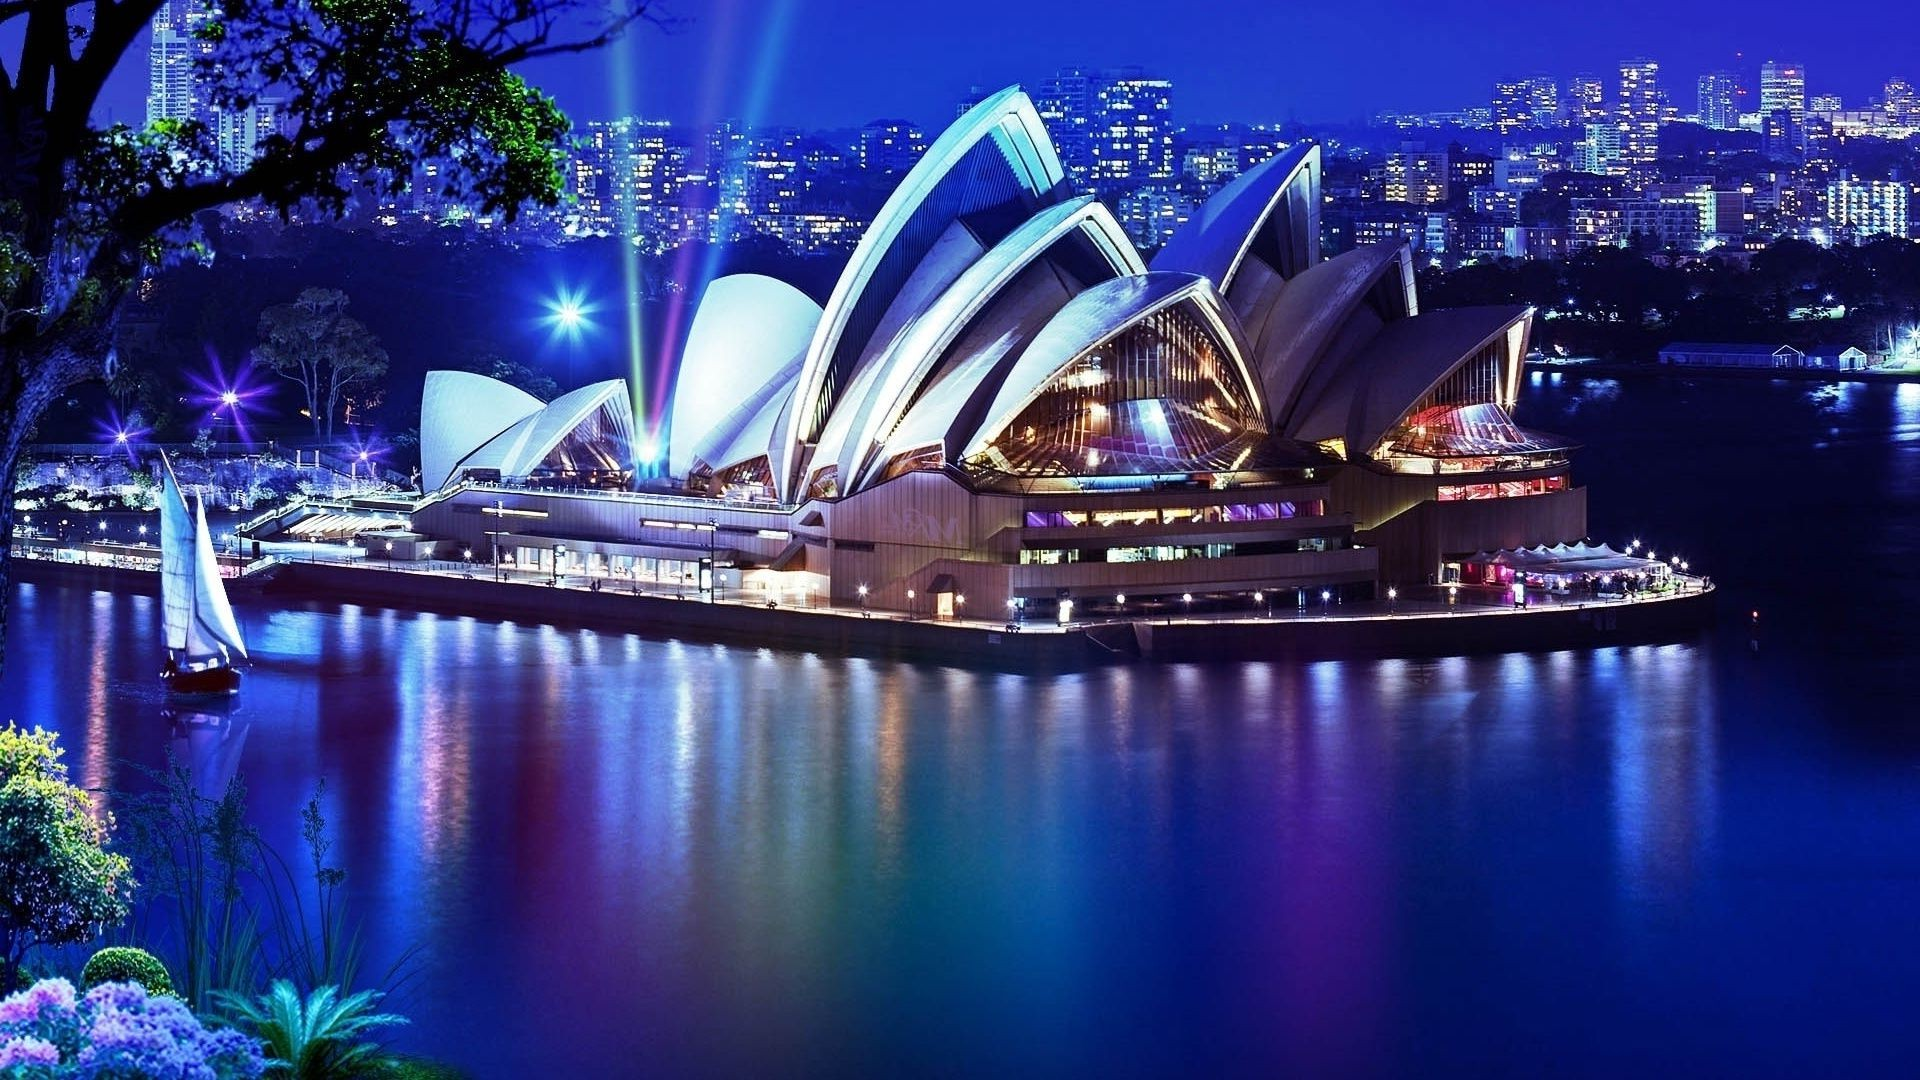 The Opera house in Sydney night Sydney theatre